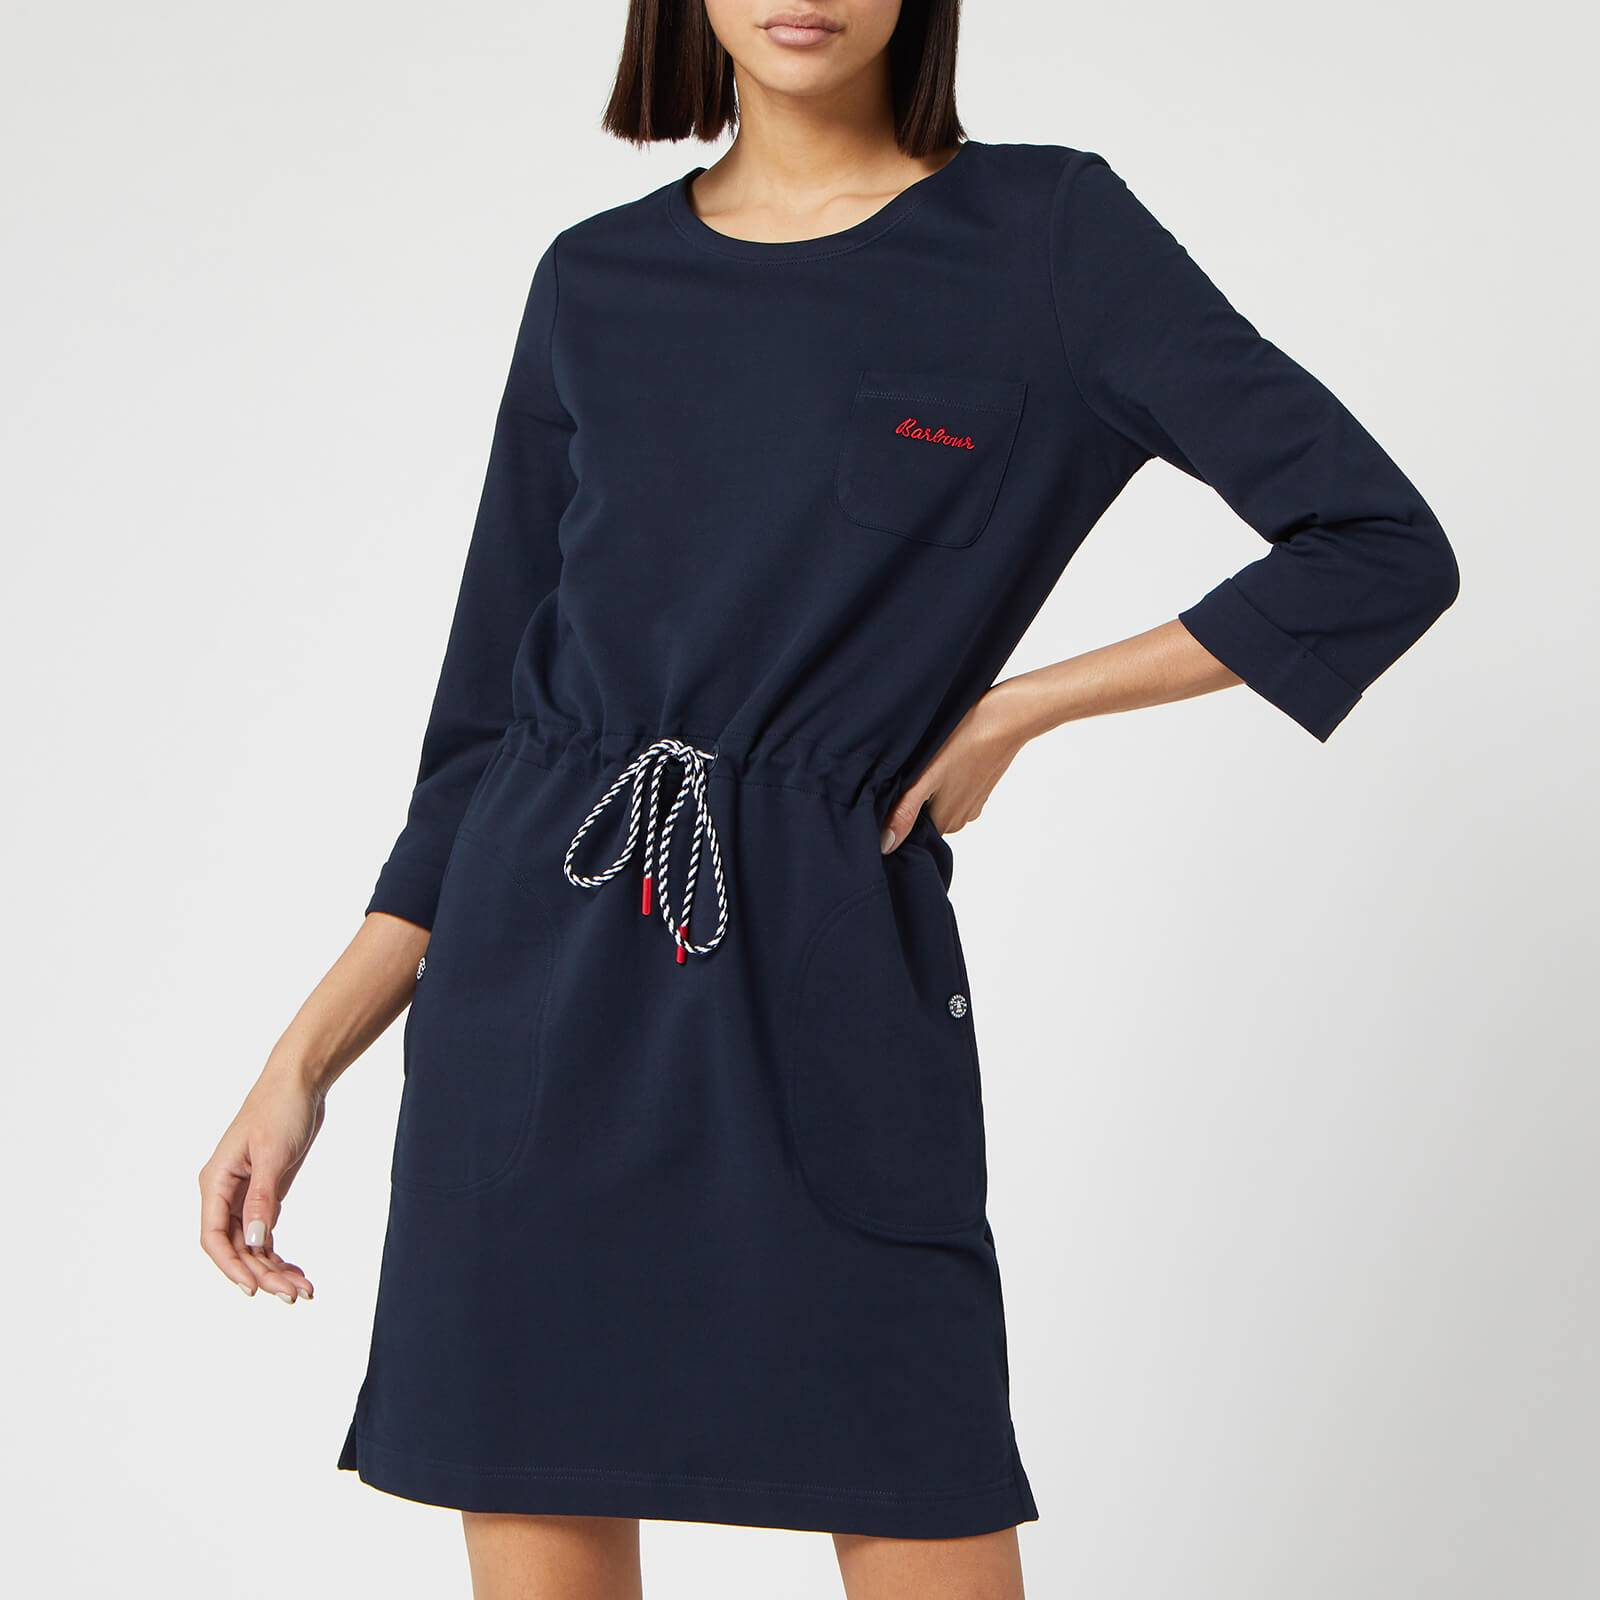 Barbour Women's Deepsea Dress - Navy - UK 8